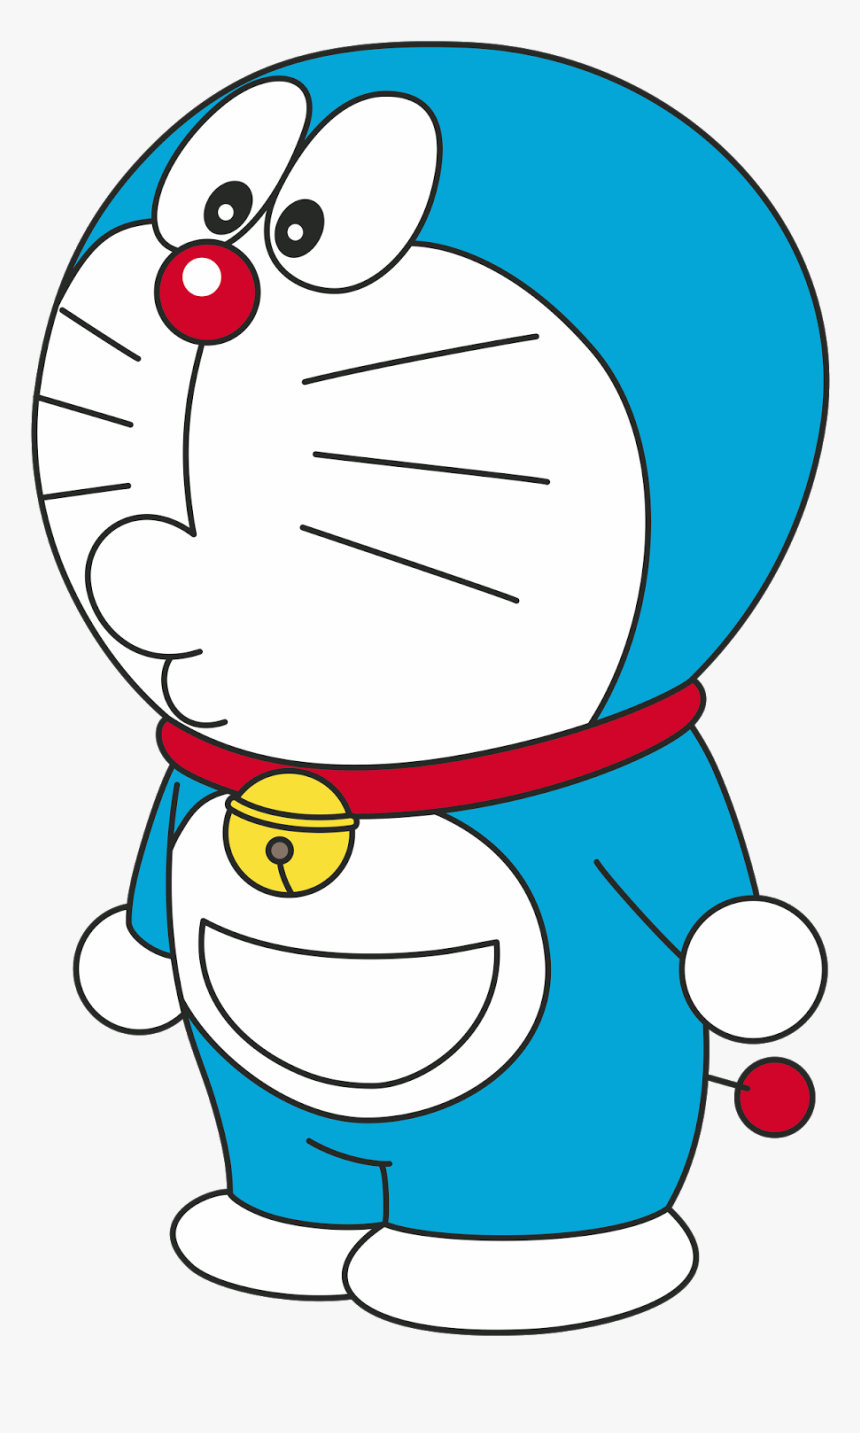 Doraemon Png, Transparent Png, Free Download